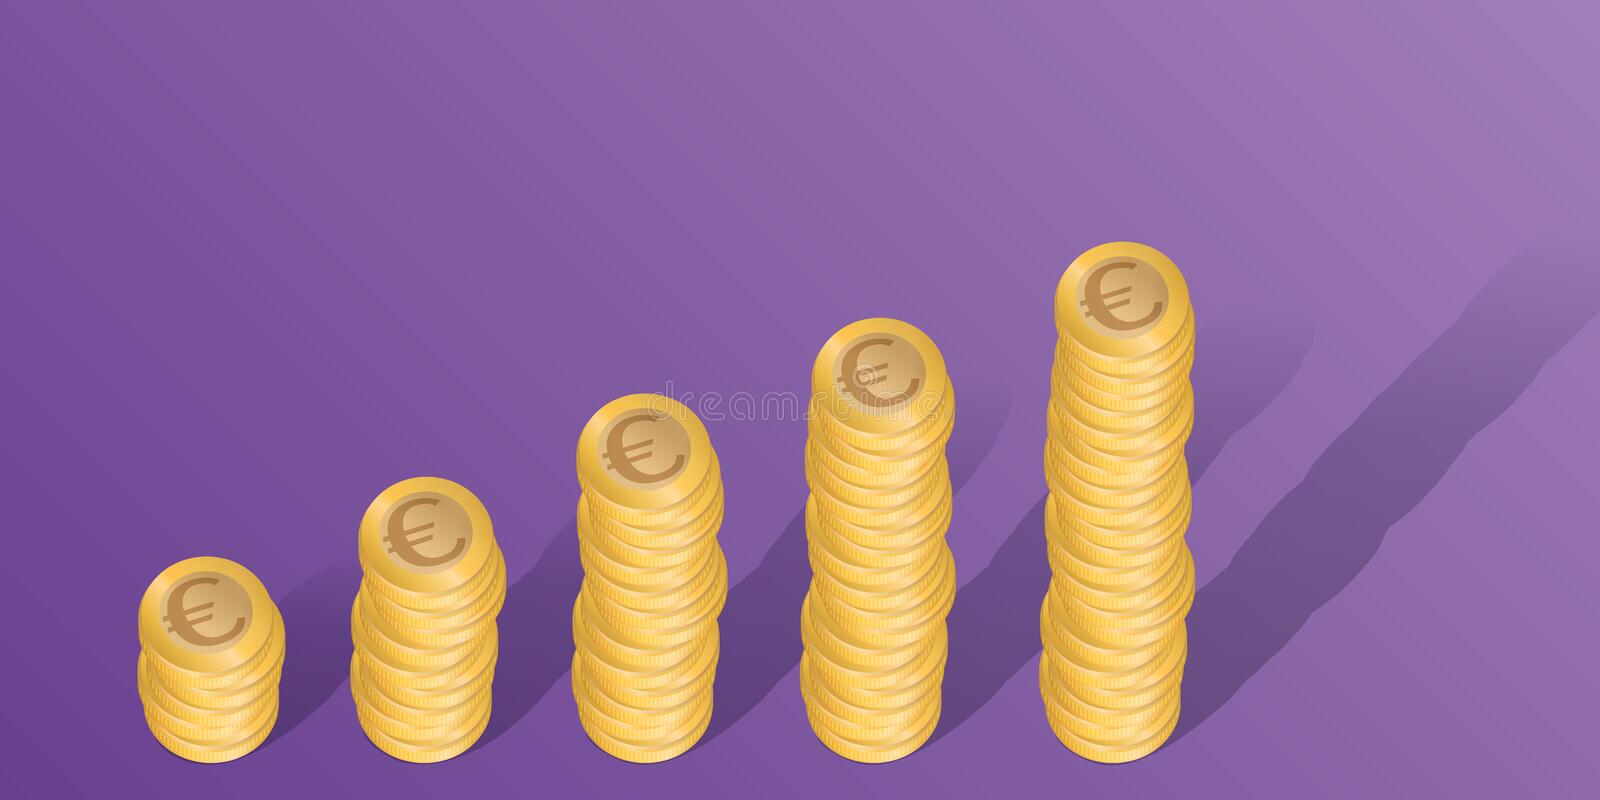 Business concept in Euros, with stacks of coins showing an increase in profits. royalty free illustration